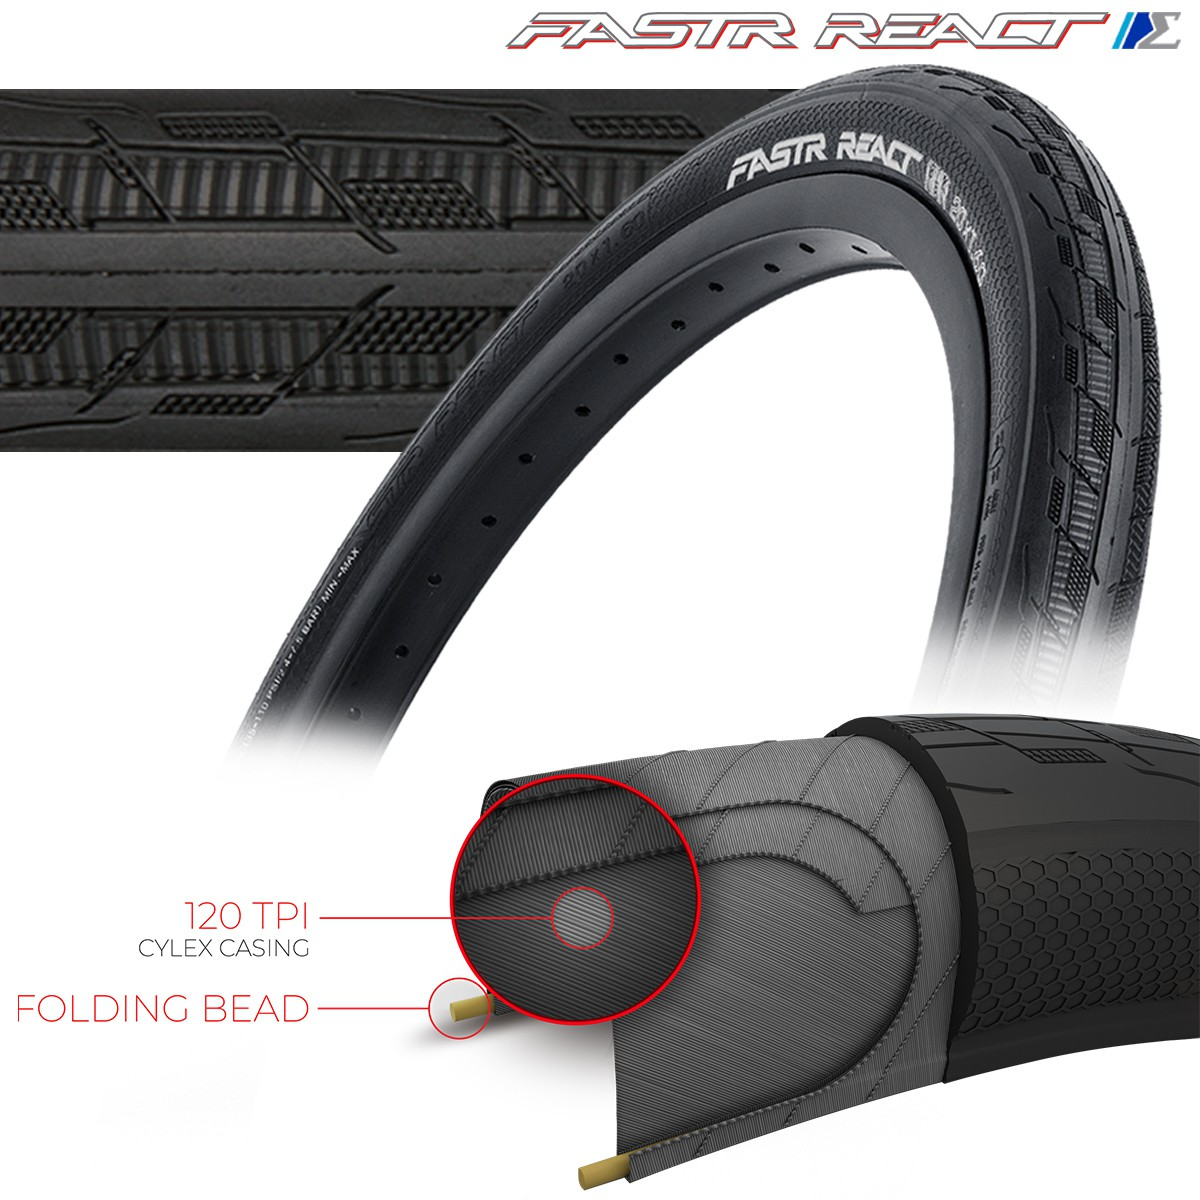 TIOGA FASTR REACT S-SPEC TIRES - 120 TPI - FOLDING BEAD